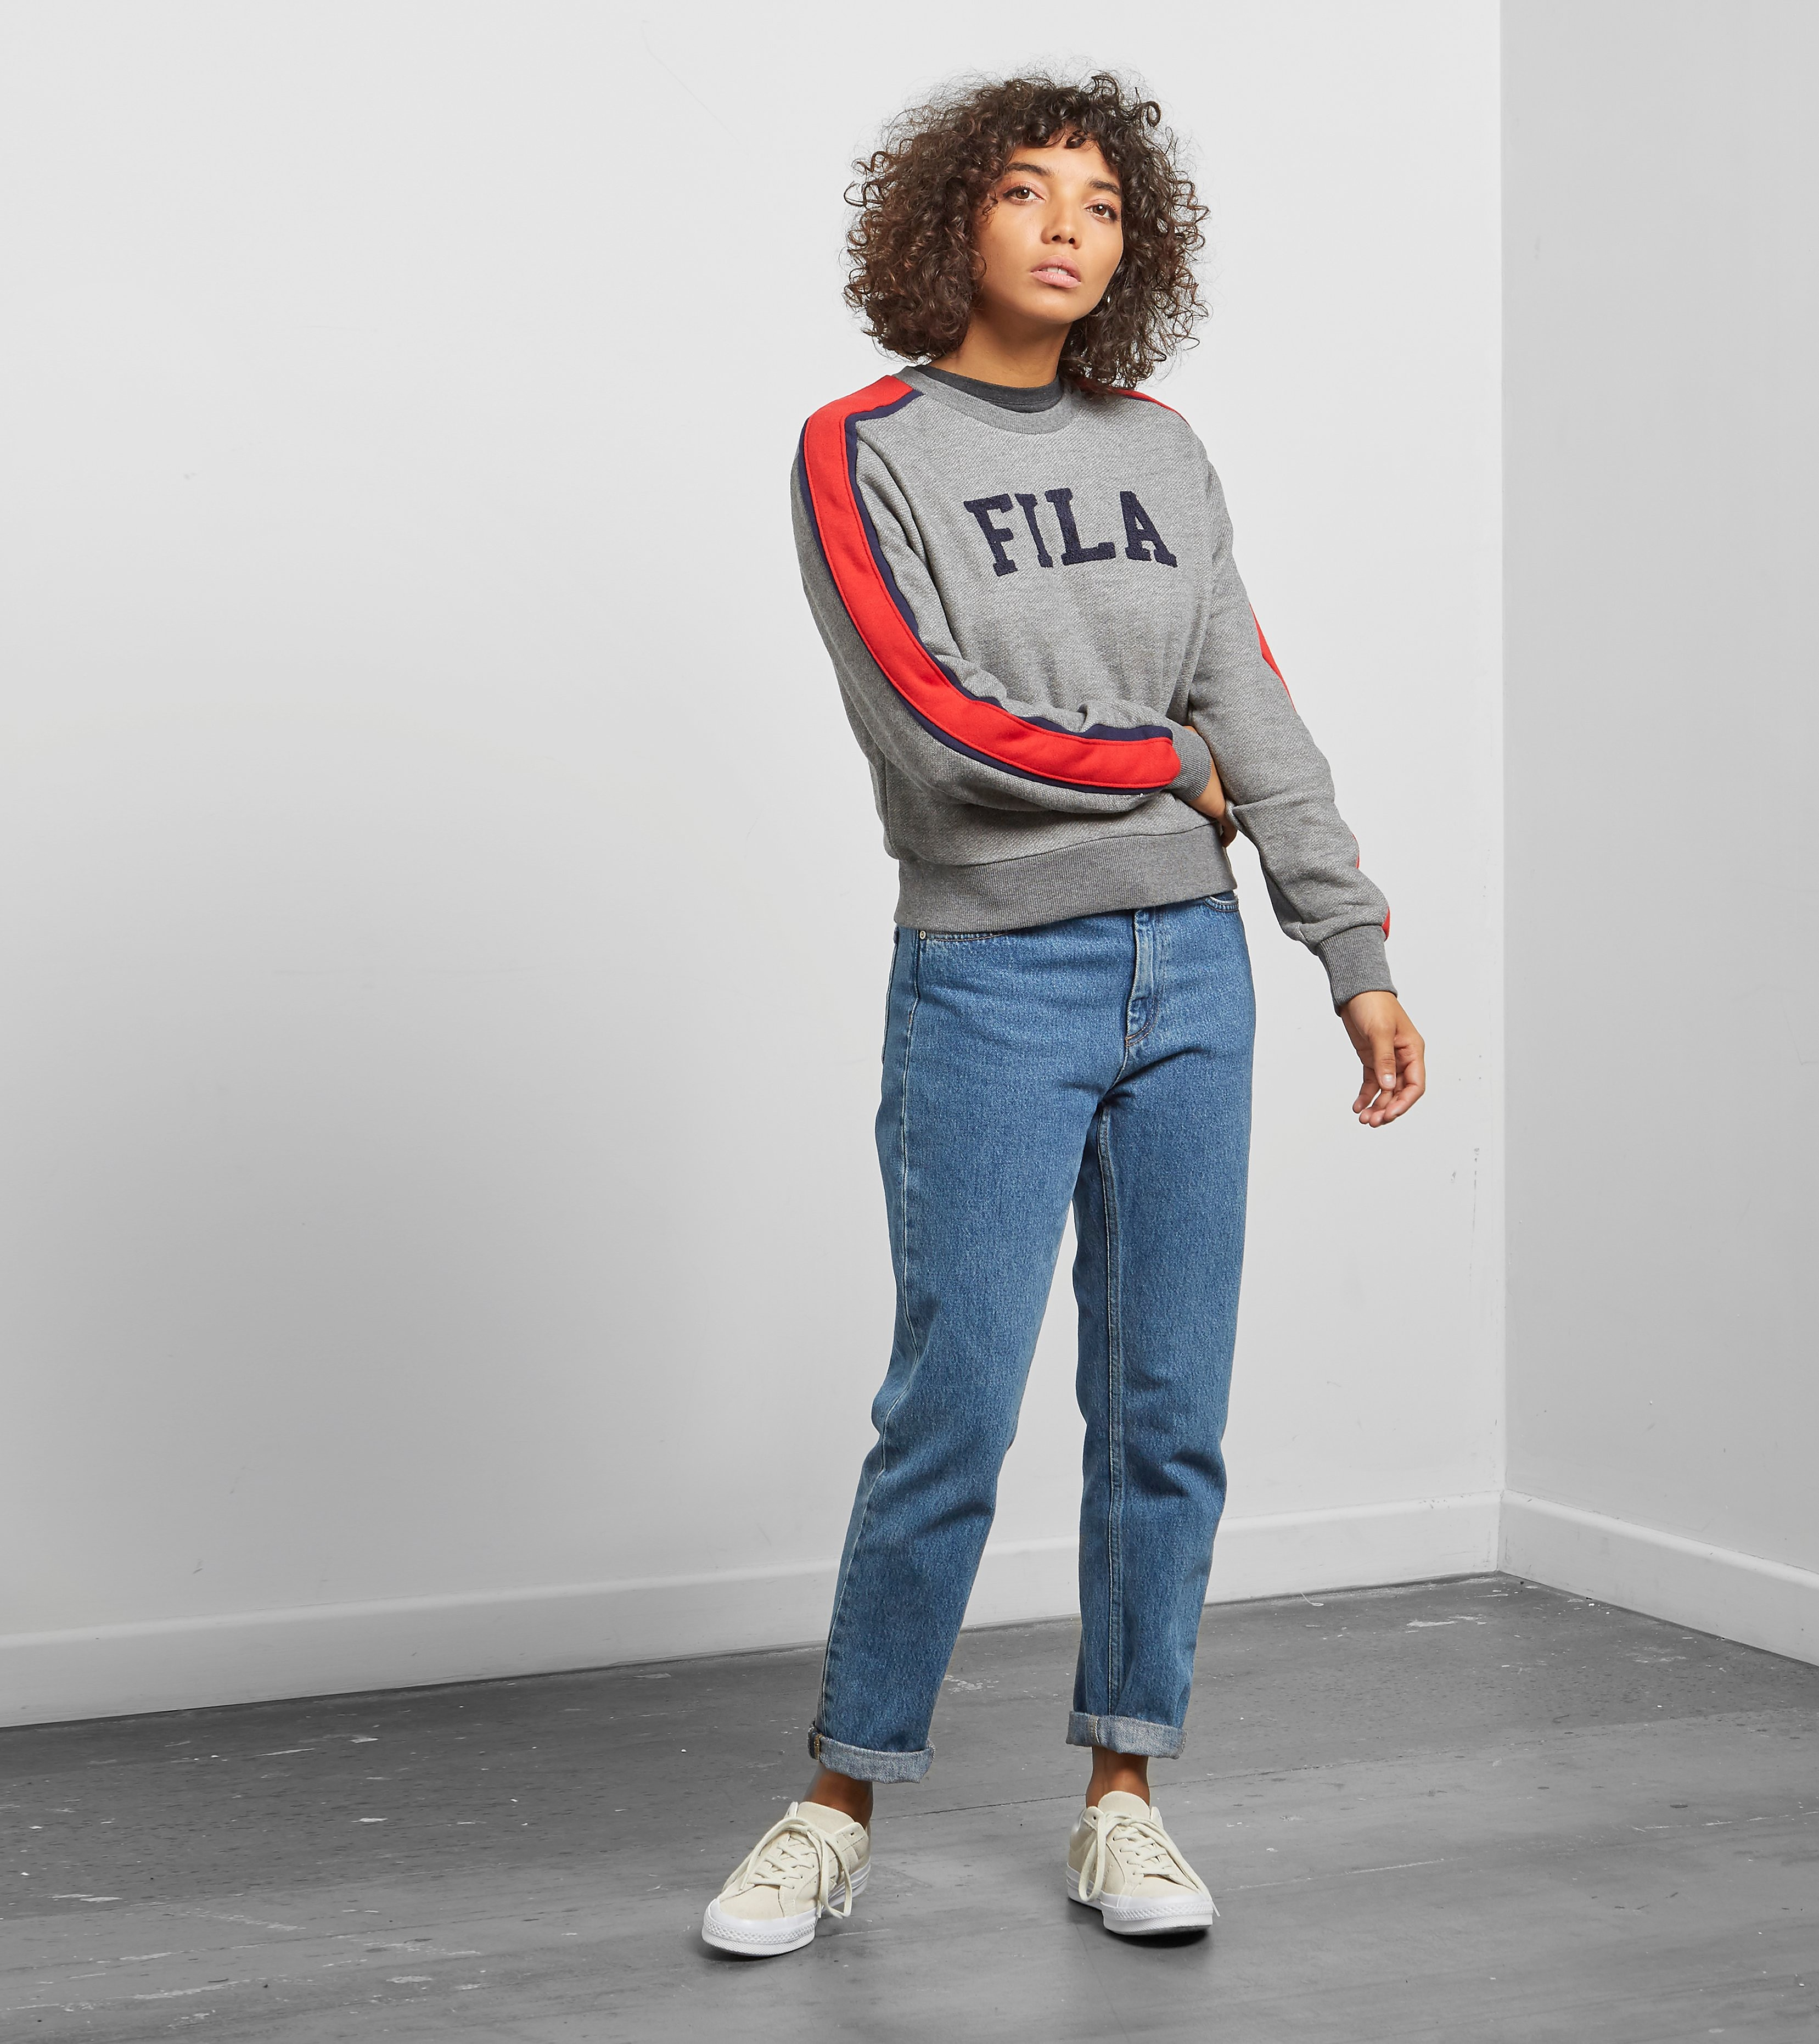 Fila Alanis Oversized Crewneck Sweatshirt - size?exclusive